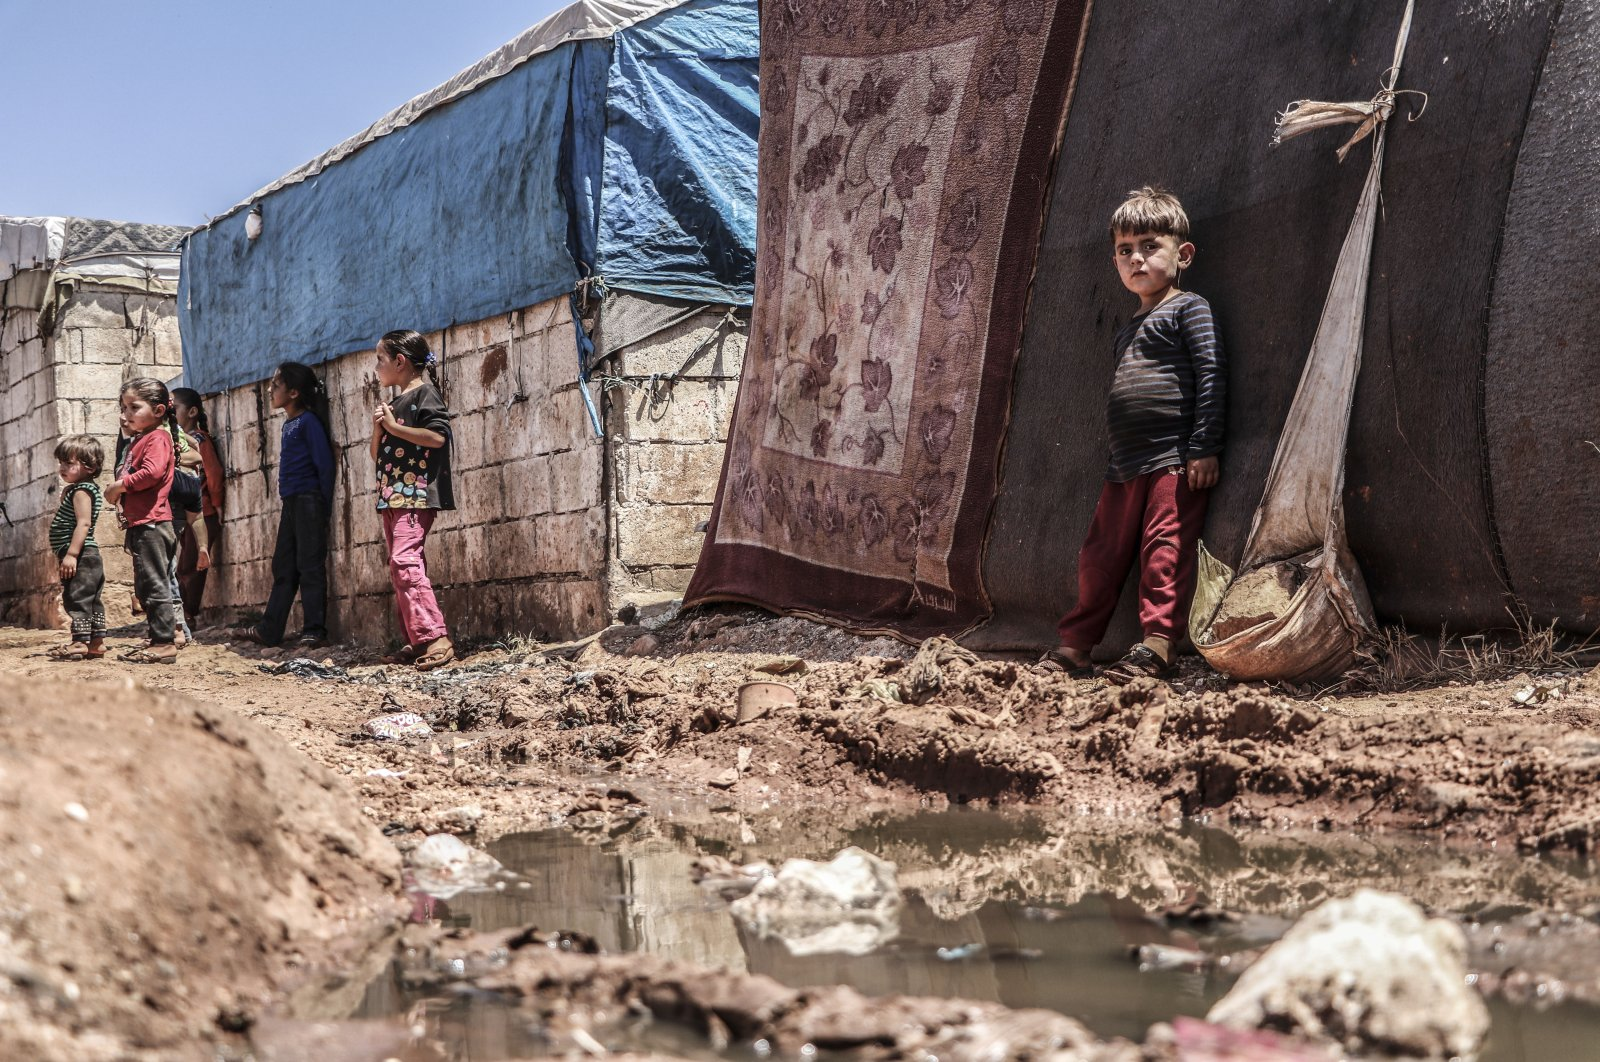 Children are seen in a tent camp, where they live under extremely unhygienic conditions and the containment of the spread of COVID-19 seems almost impossible, in Idlib, Syria, July 7, 2020 (AA Photo)